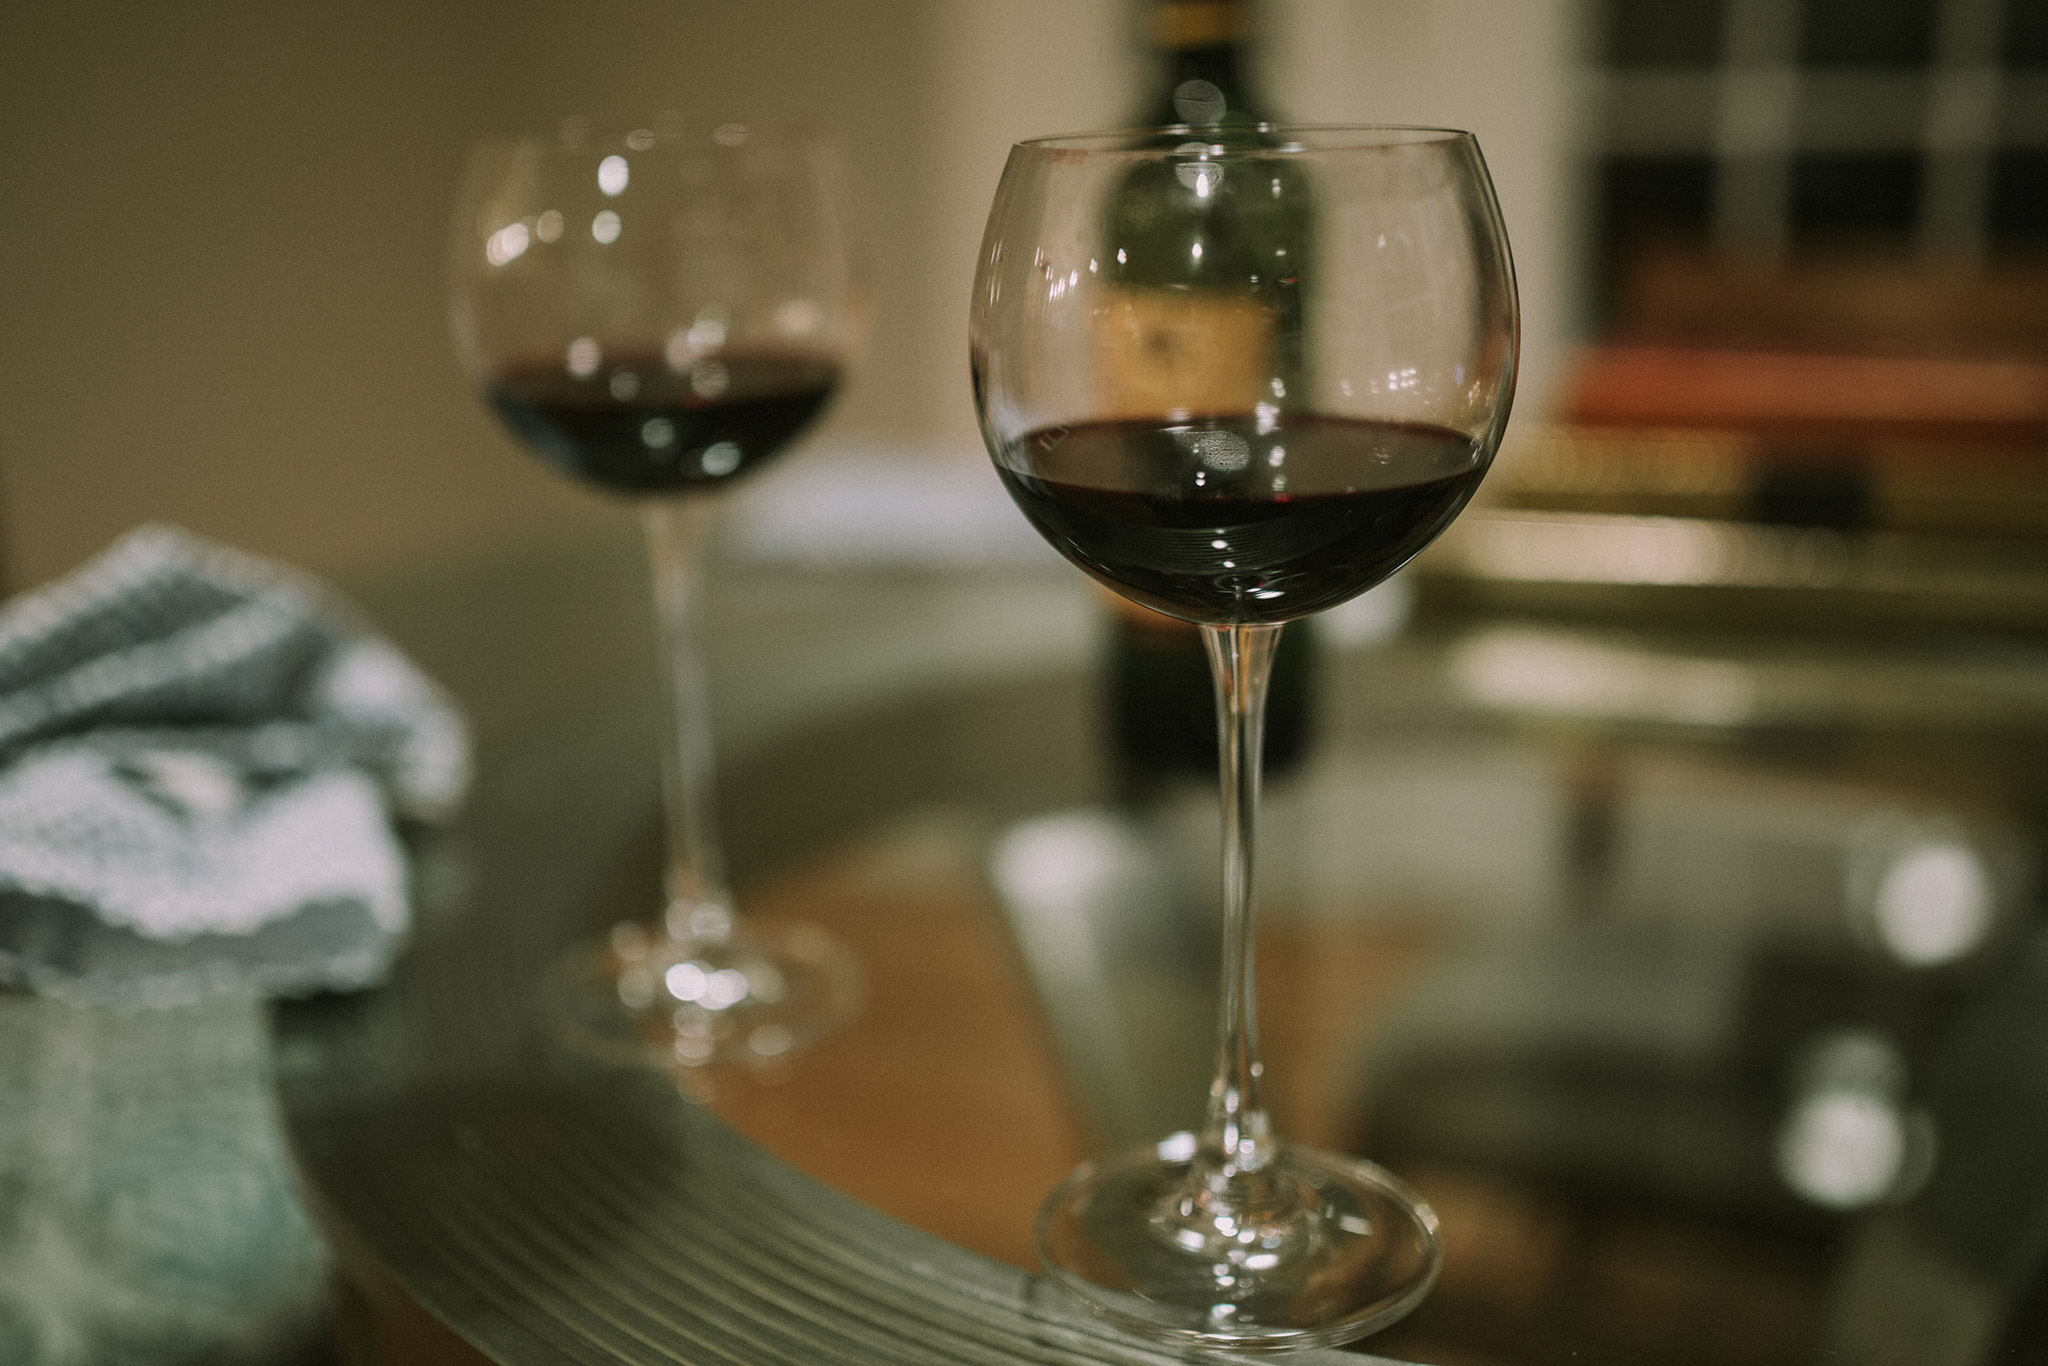 January 10: Debriefing with friends over a glass of red.